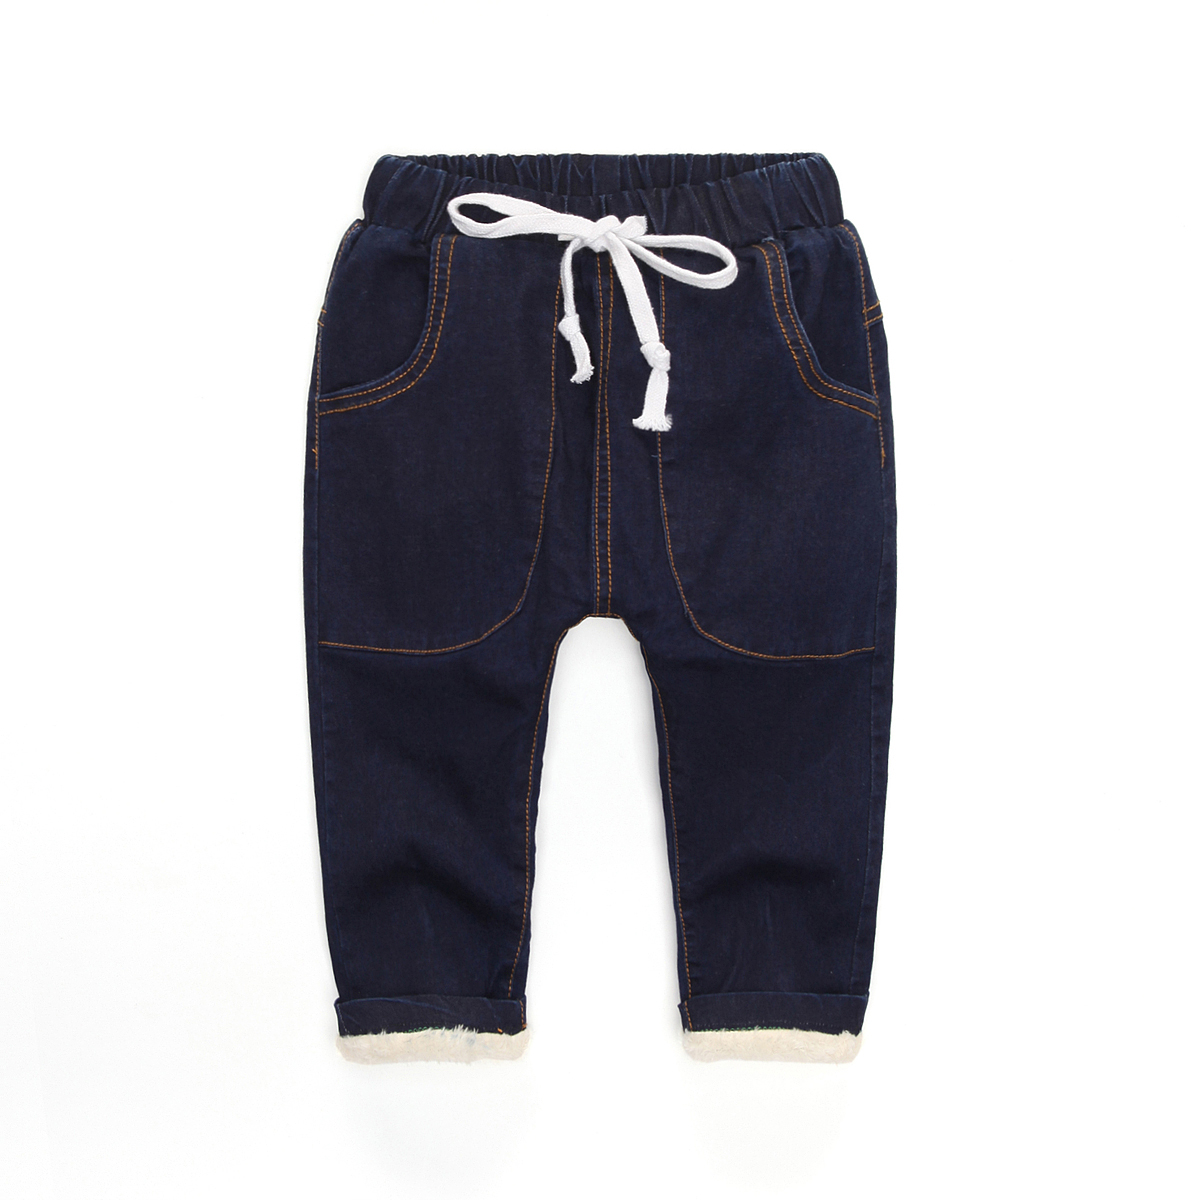 2017 winter child jeans boys fashion denim pants child fleece thickening long trousers boys baby harem pants